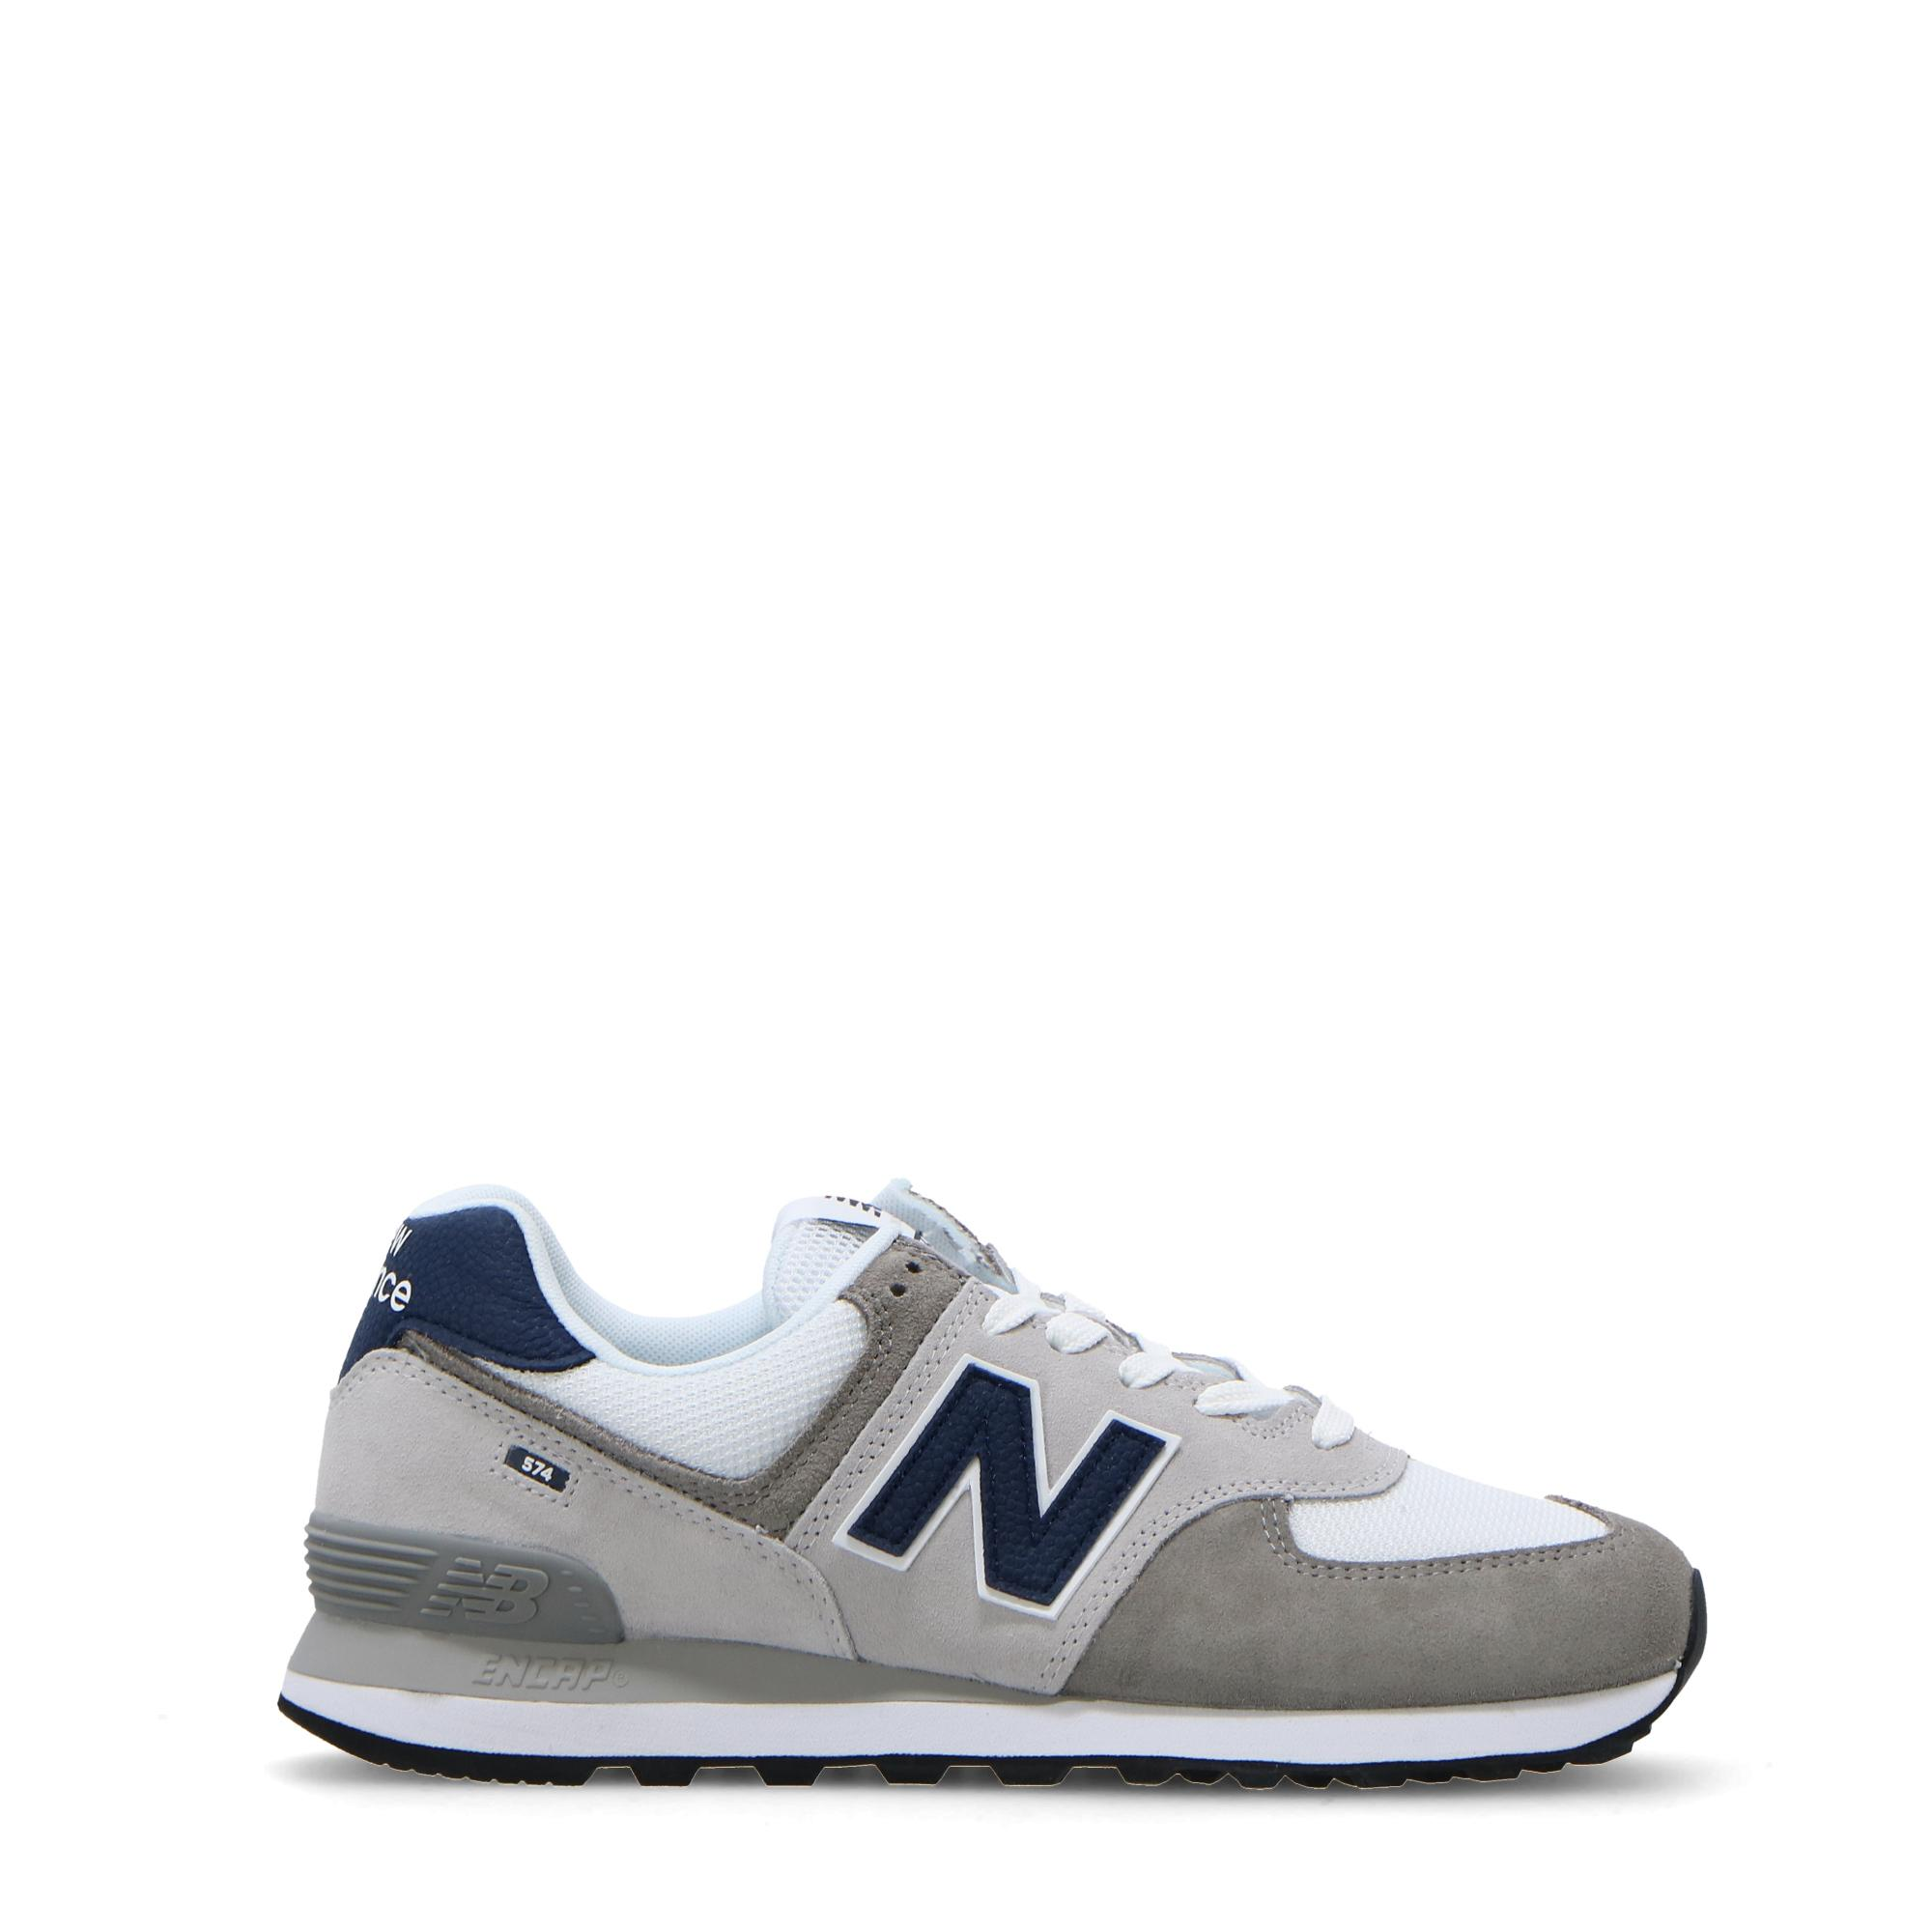 New Balance 574 GREY WHITE